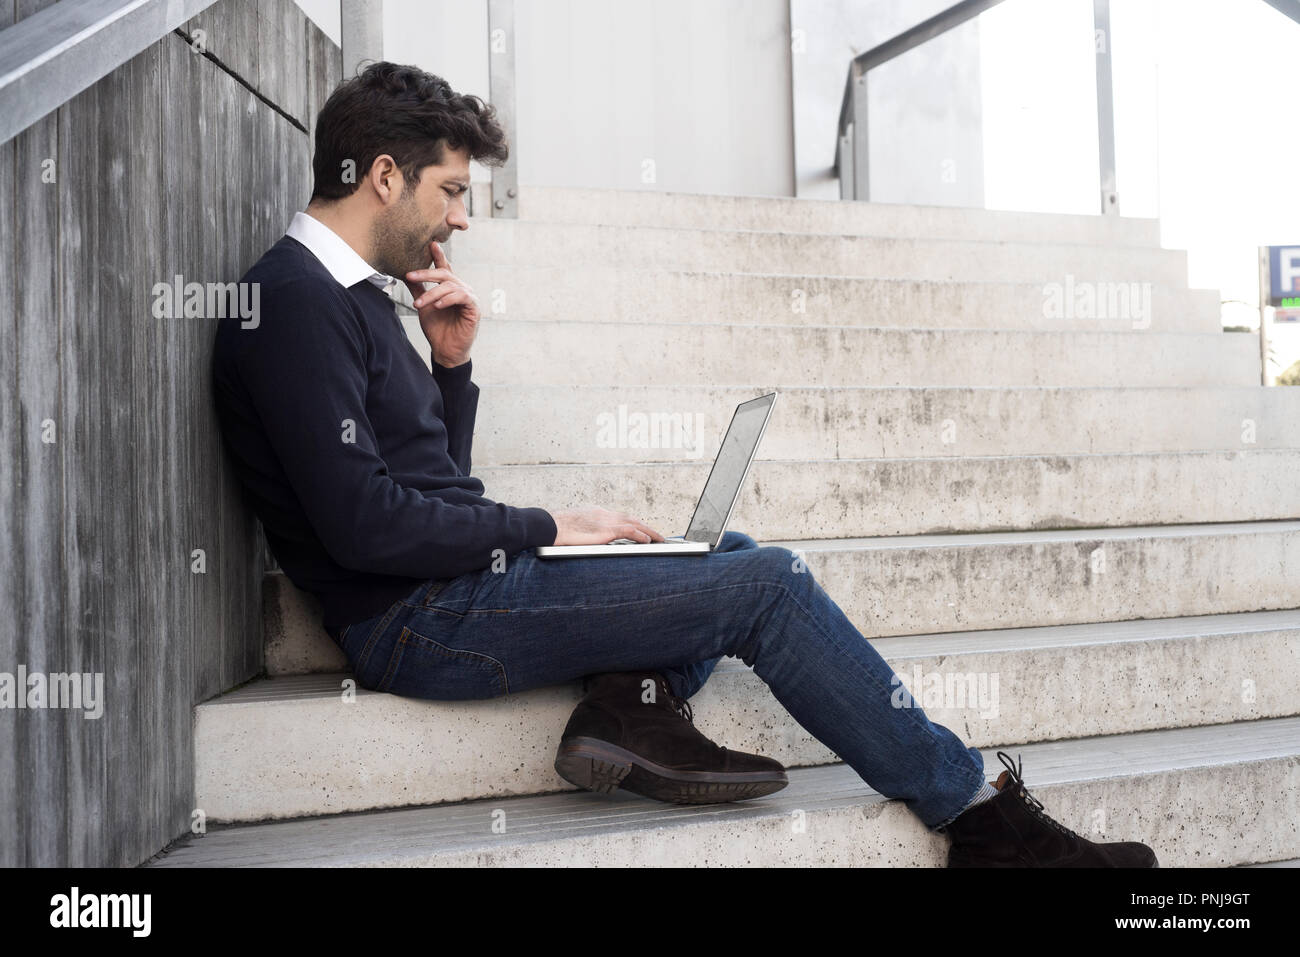 young man with computer and doubts - Stock Image